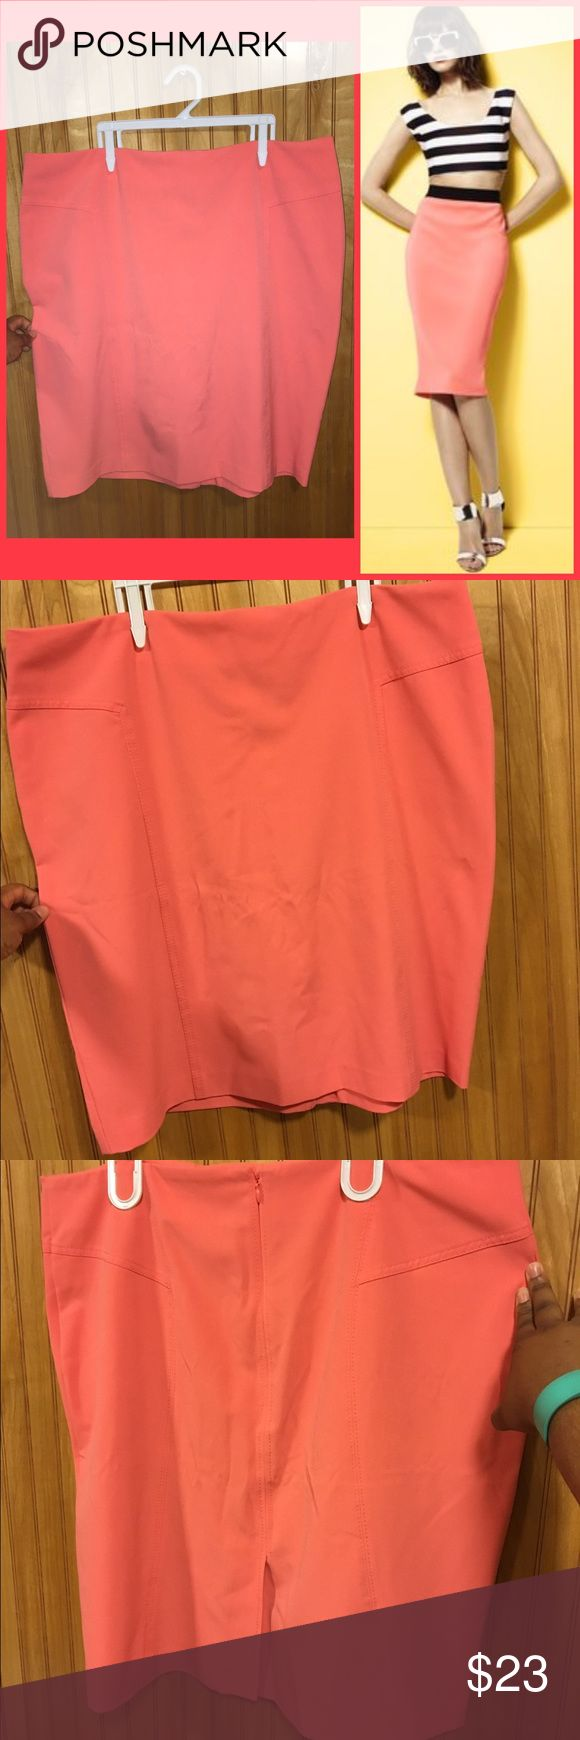 """🎉HP!🎉NY&COMPANY Coral Pencil Skirt Sz 16 Super cute, it just doesn't fit me anymore! Coral pencil skirt with slit in the back. Conforms to the curves and is very flattering. Measures: 22""""L x 39""""Waist x 45""""Hip. EUC. Sz 16. New York & Company Skirts Pencil"""